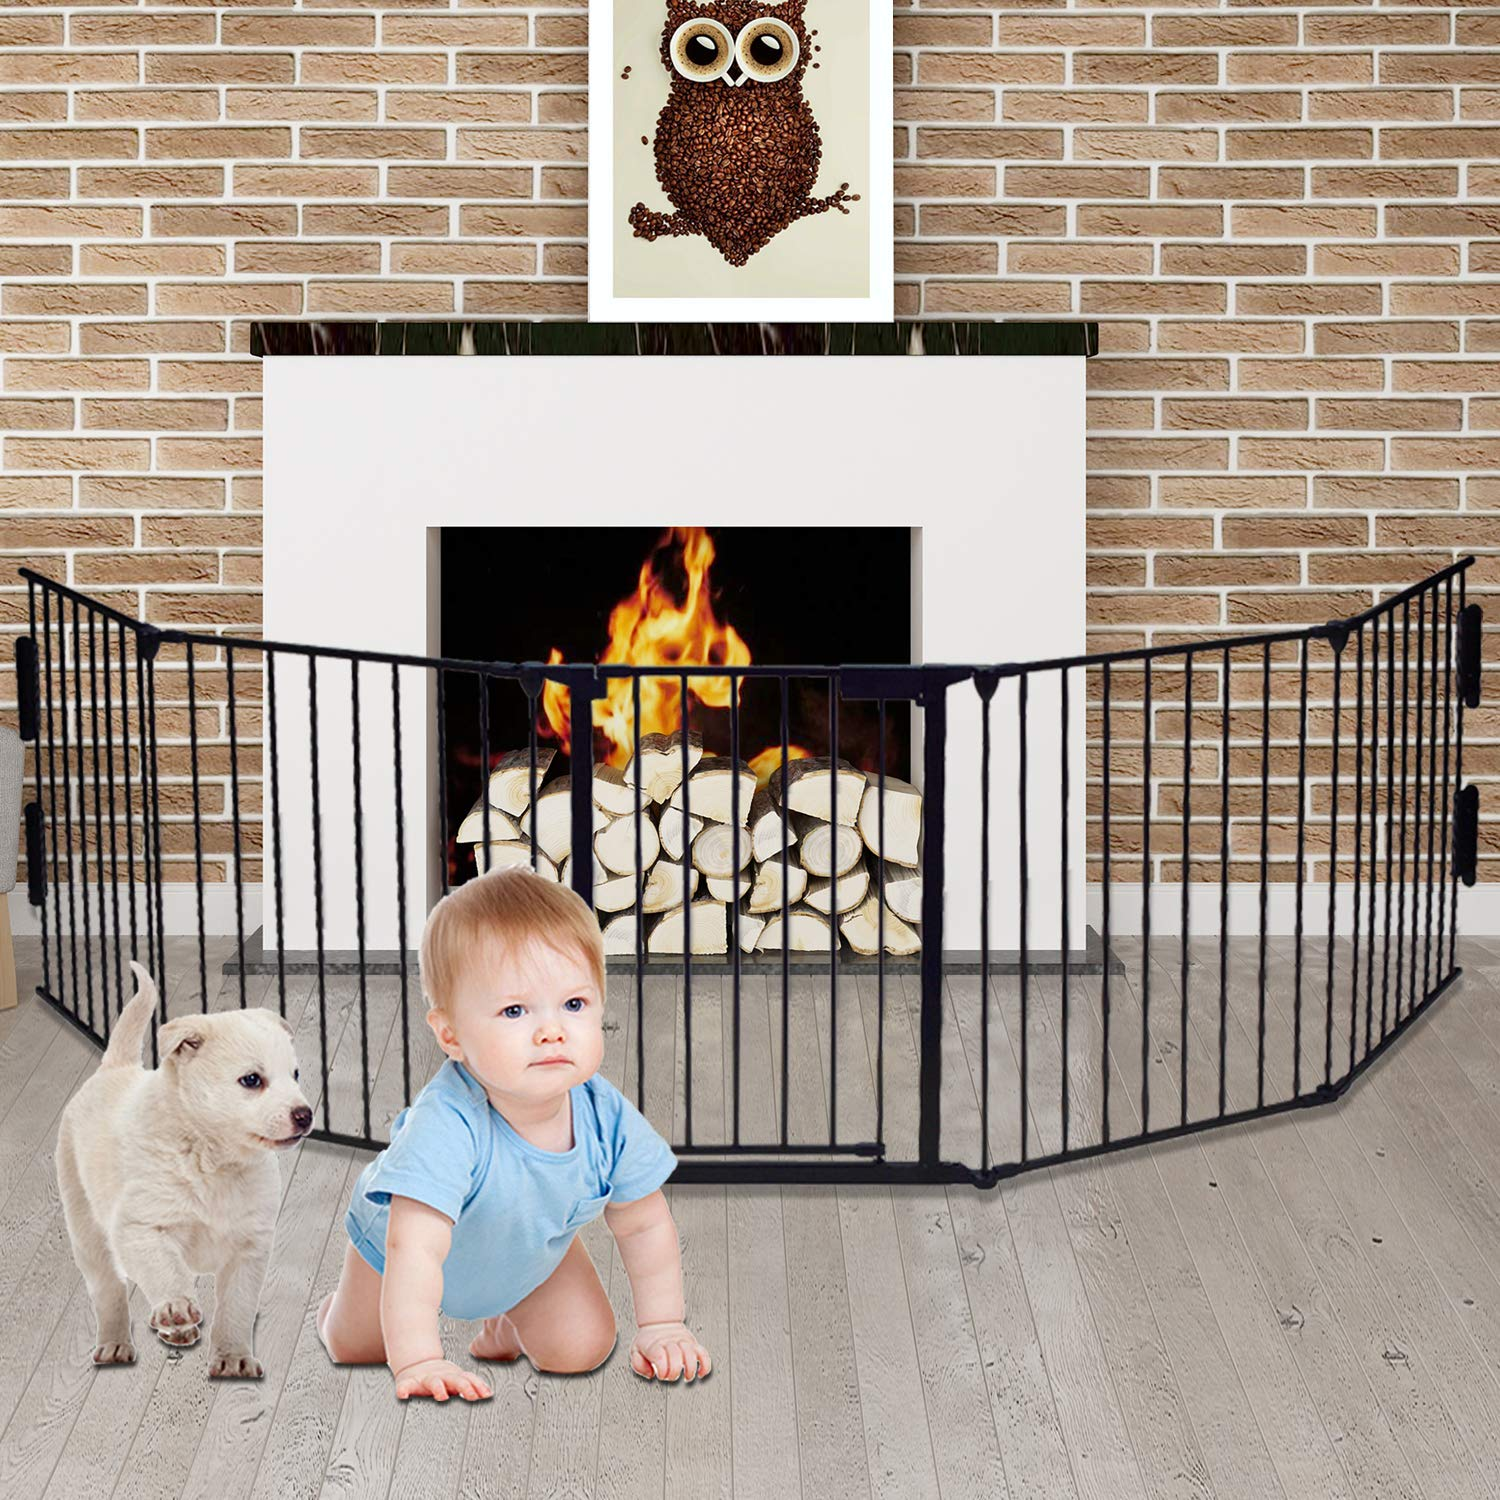 3-in-1Metal Fence Fireplace Gate Baby Safety Gate Pet Gate for Provide a Safe Entertainment Area 26''×30''×0.6''(5pcs,Black)